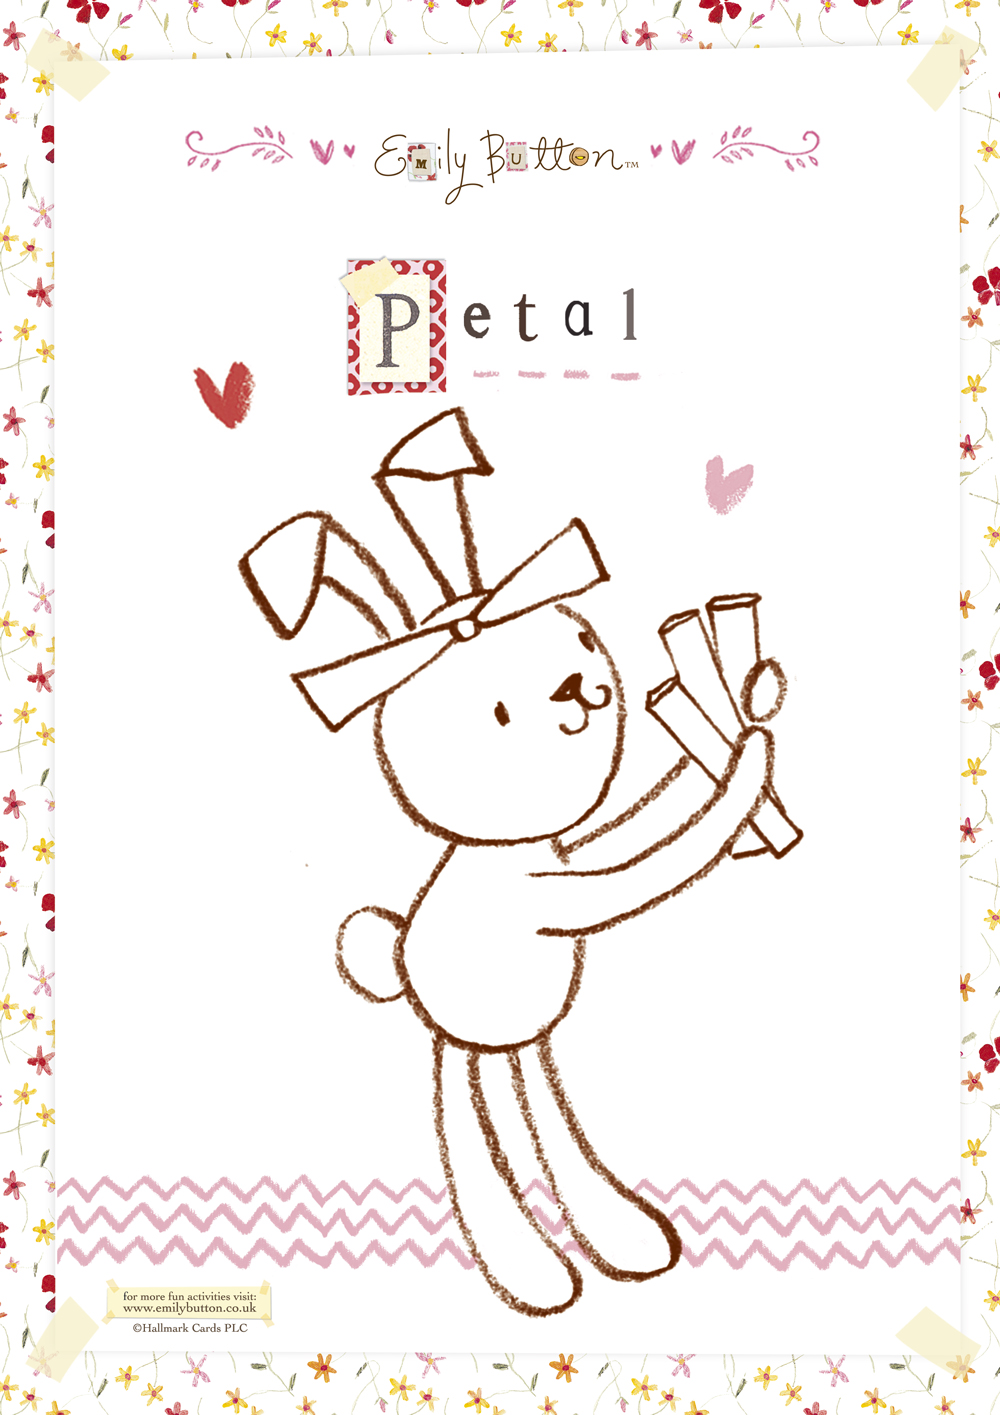 Petal - Download the pdf (548kb)